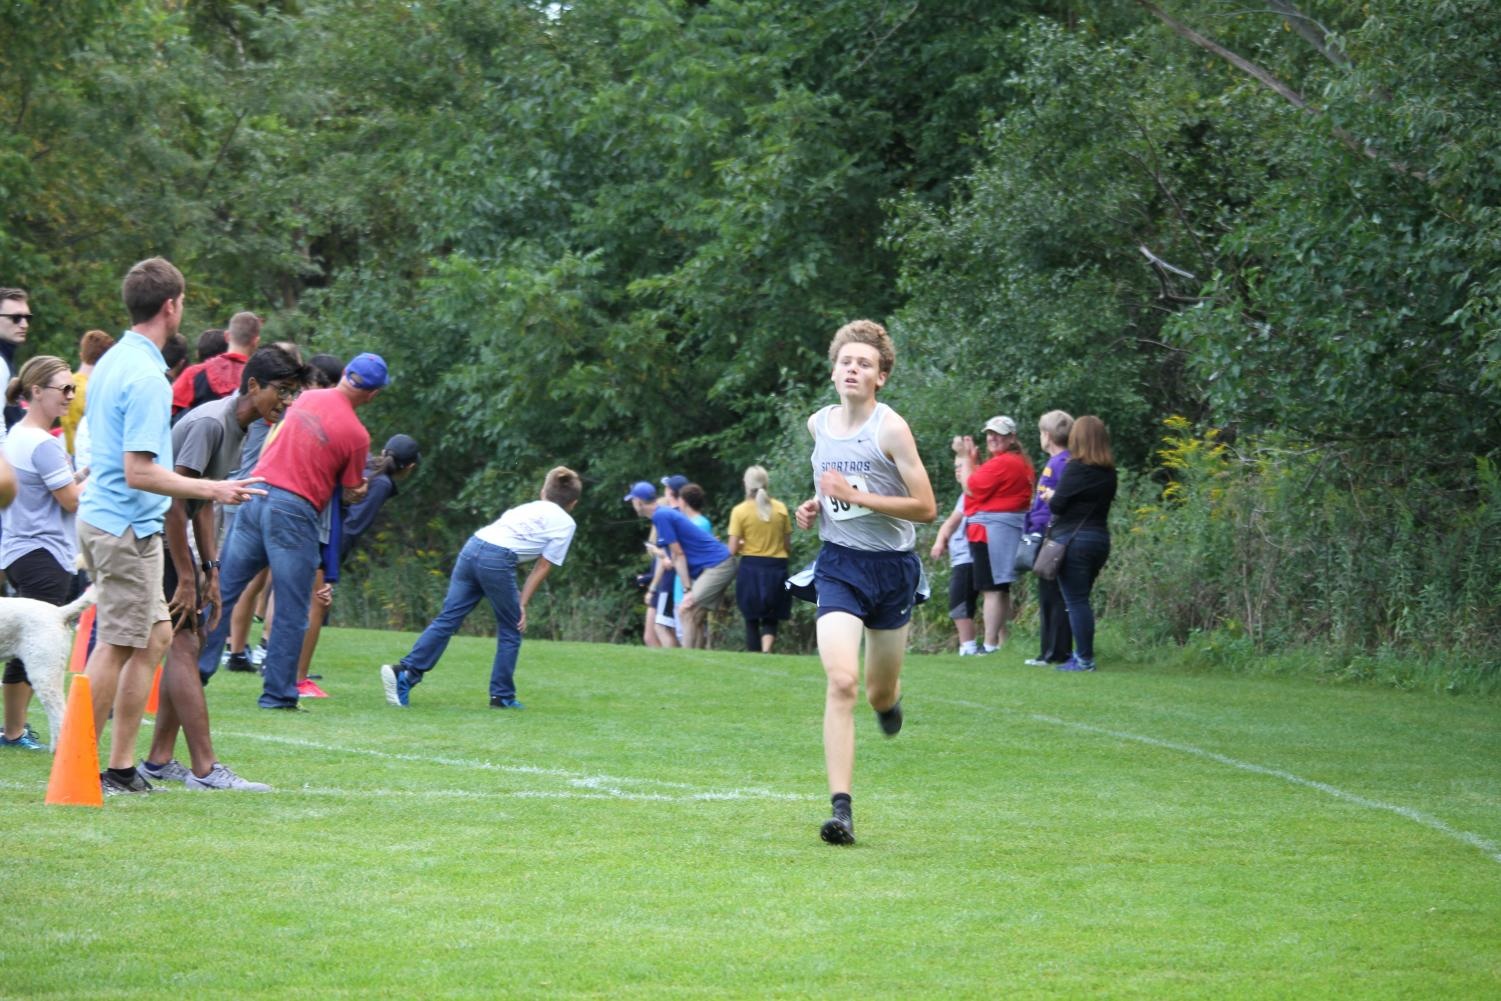 Max Murphy finishing up his first race of the season